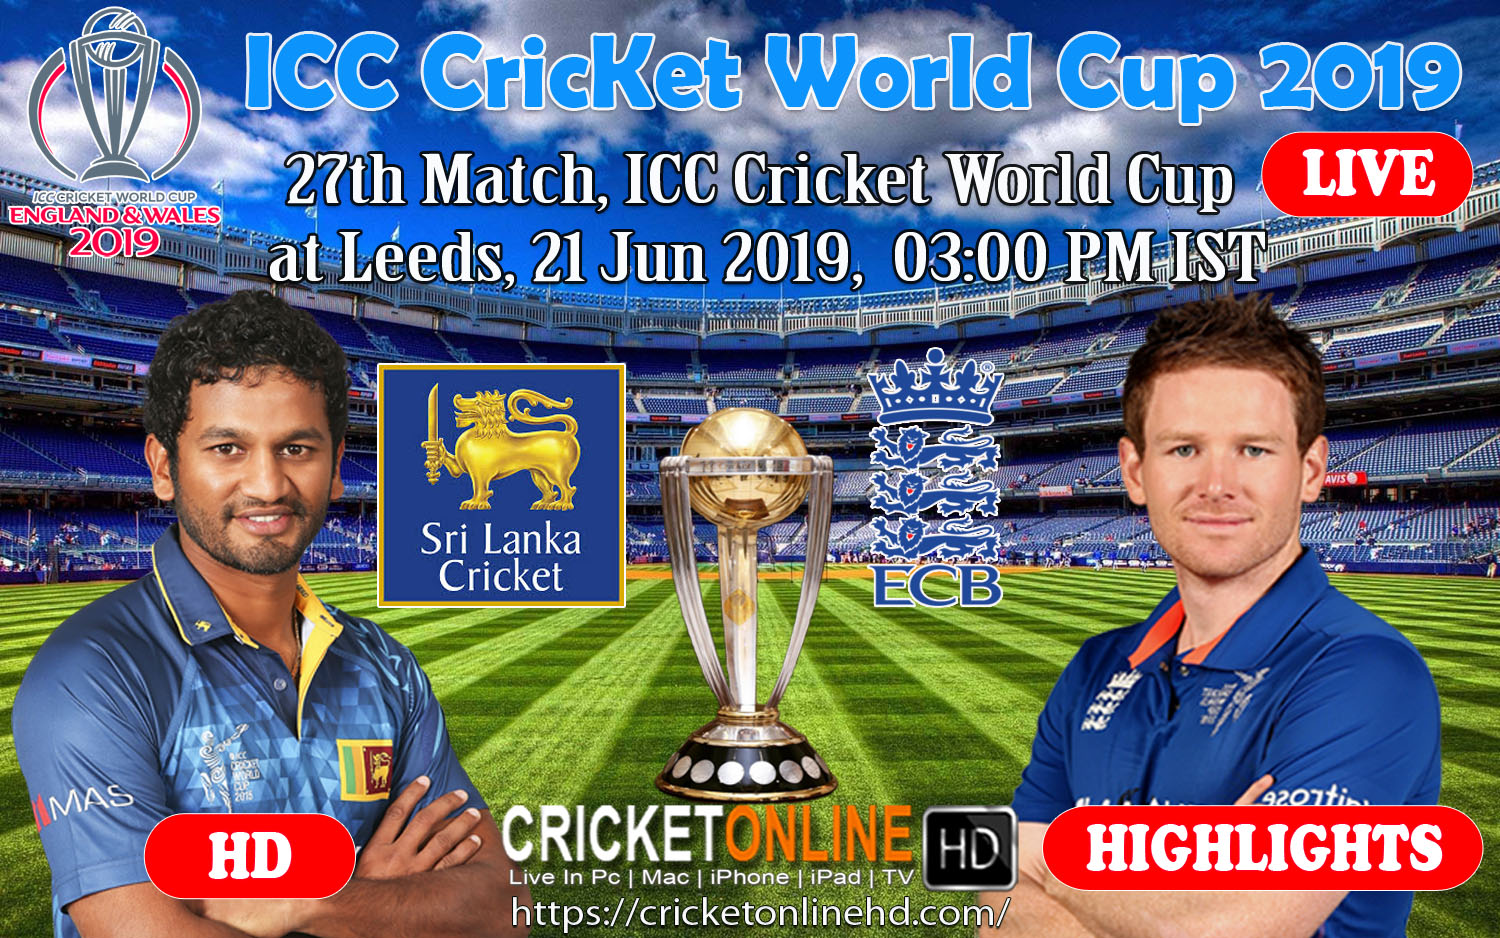 England Vs Sri Lanka 27th Match, ICC Cricket World Cup 2019 Live Streaming HD at Leeds, Jun 21